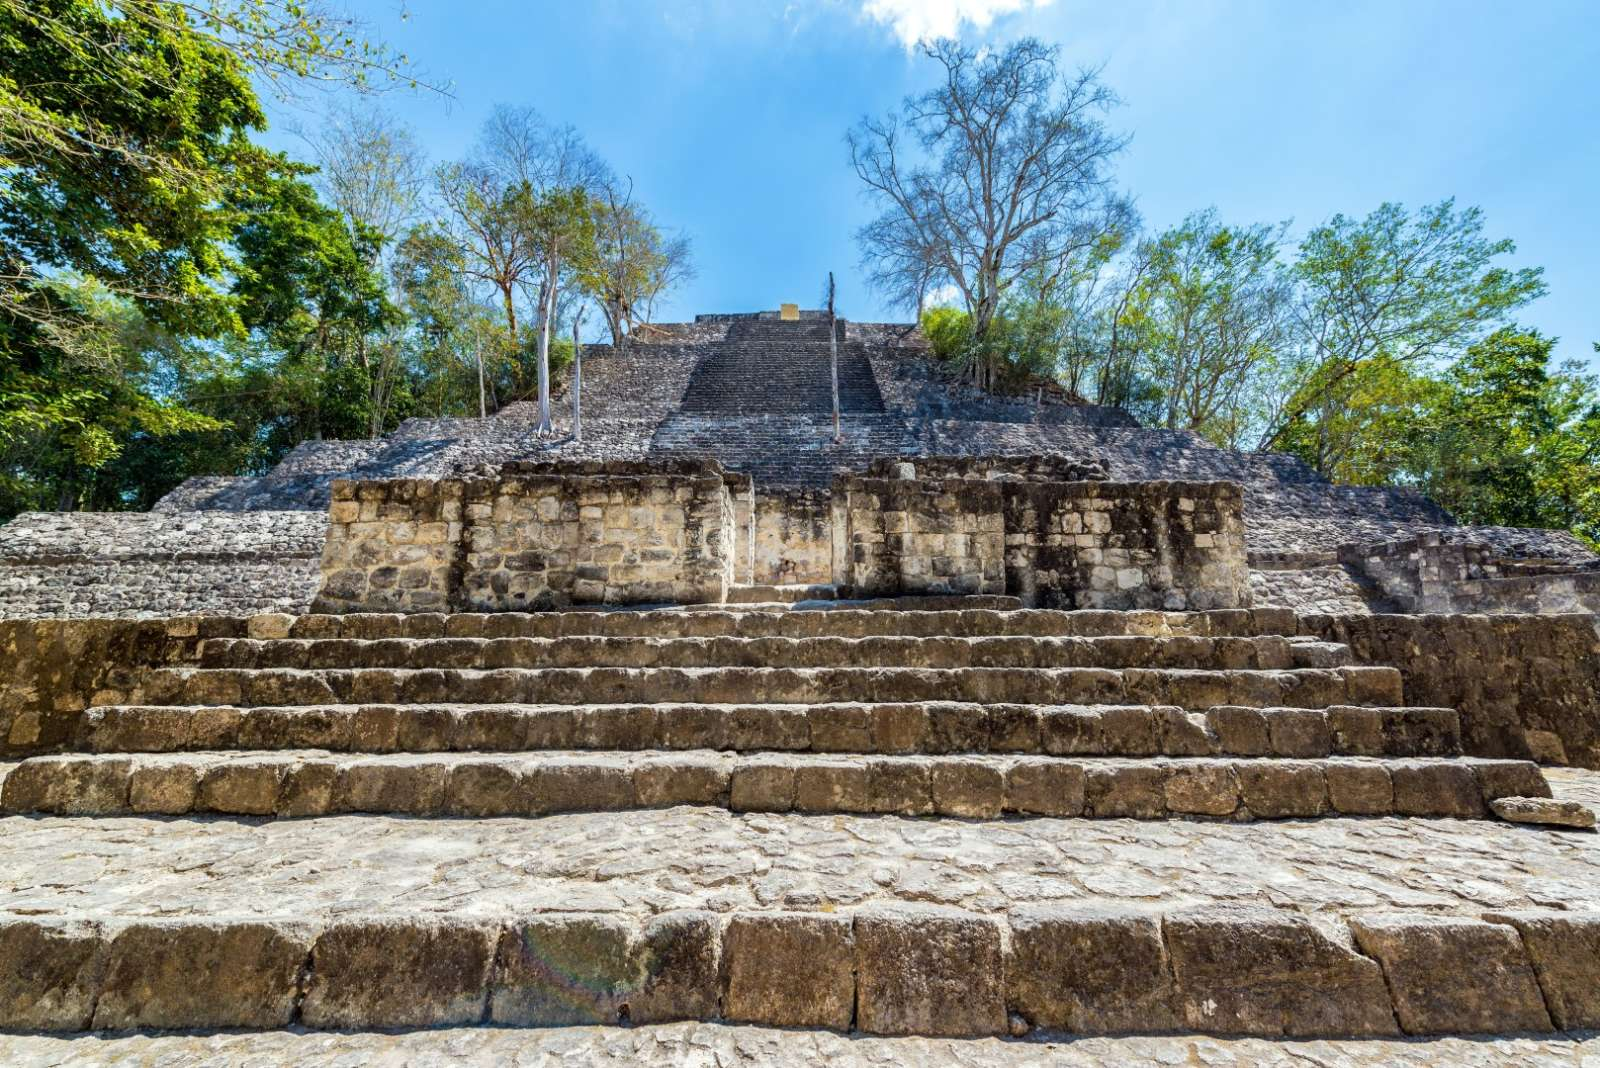 Base of pyramid in Calakmul in Mexico